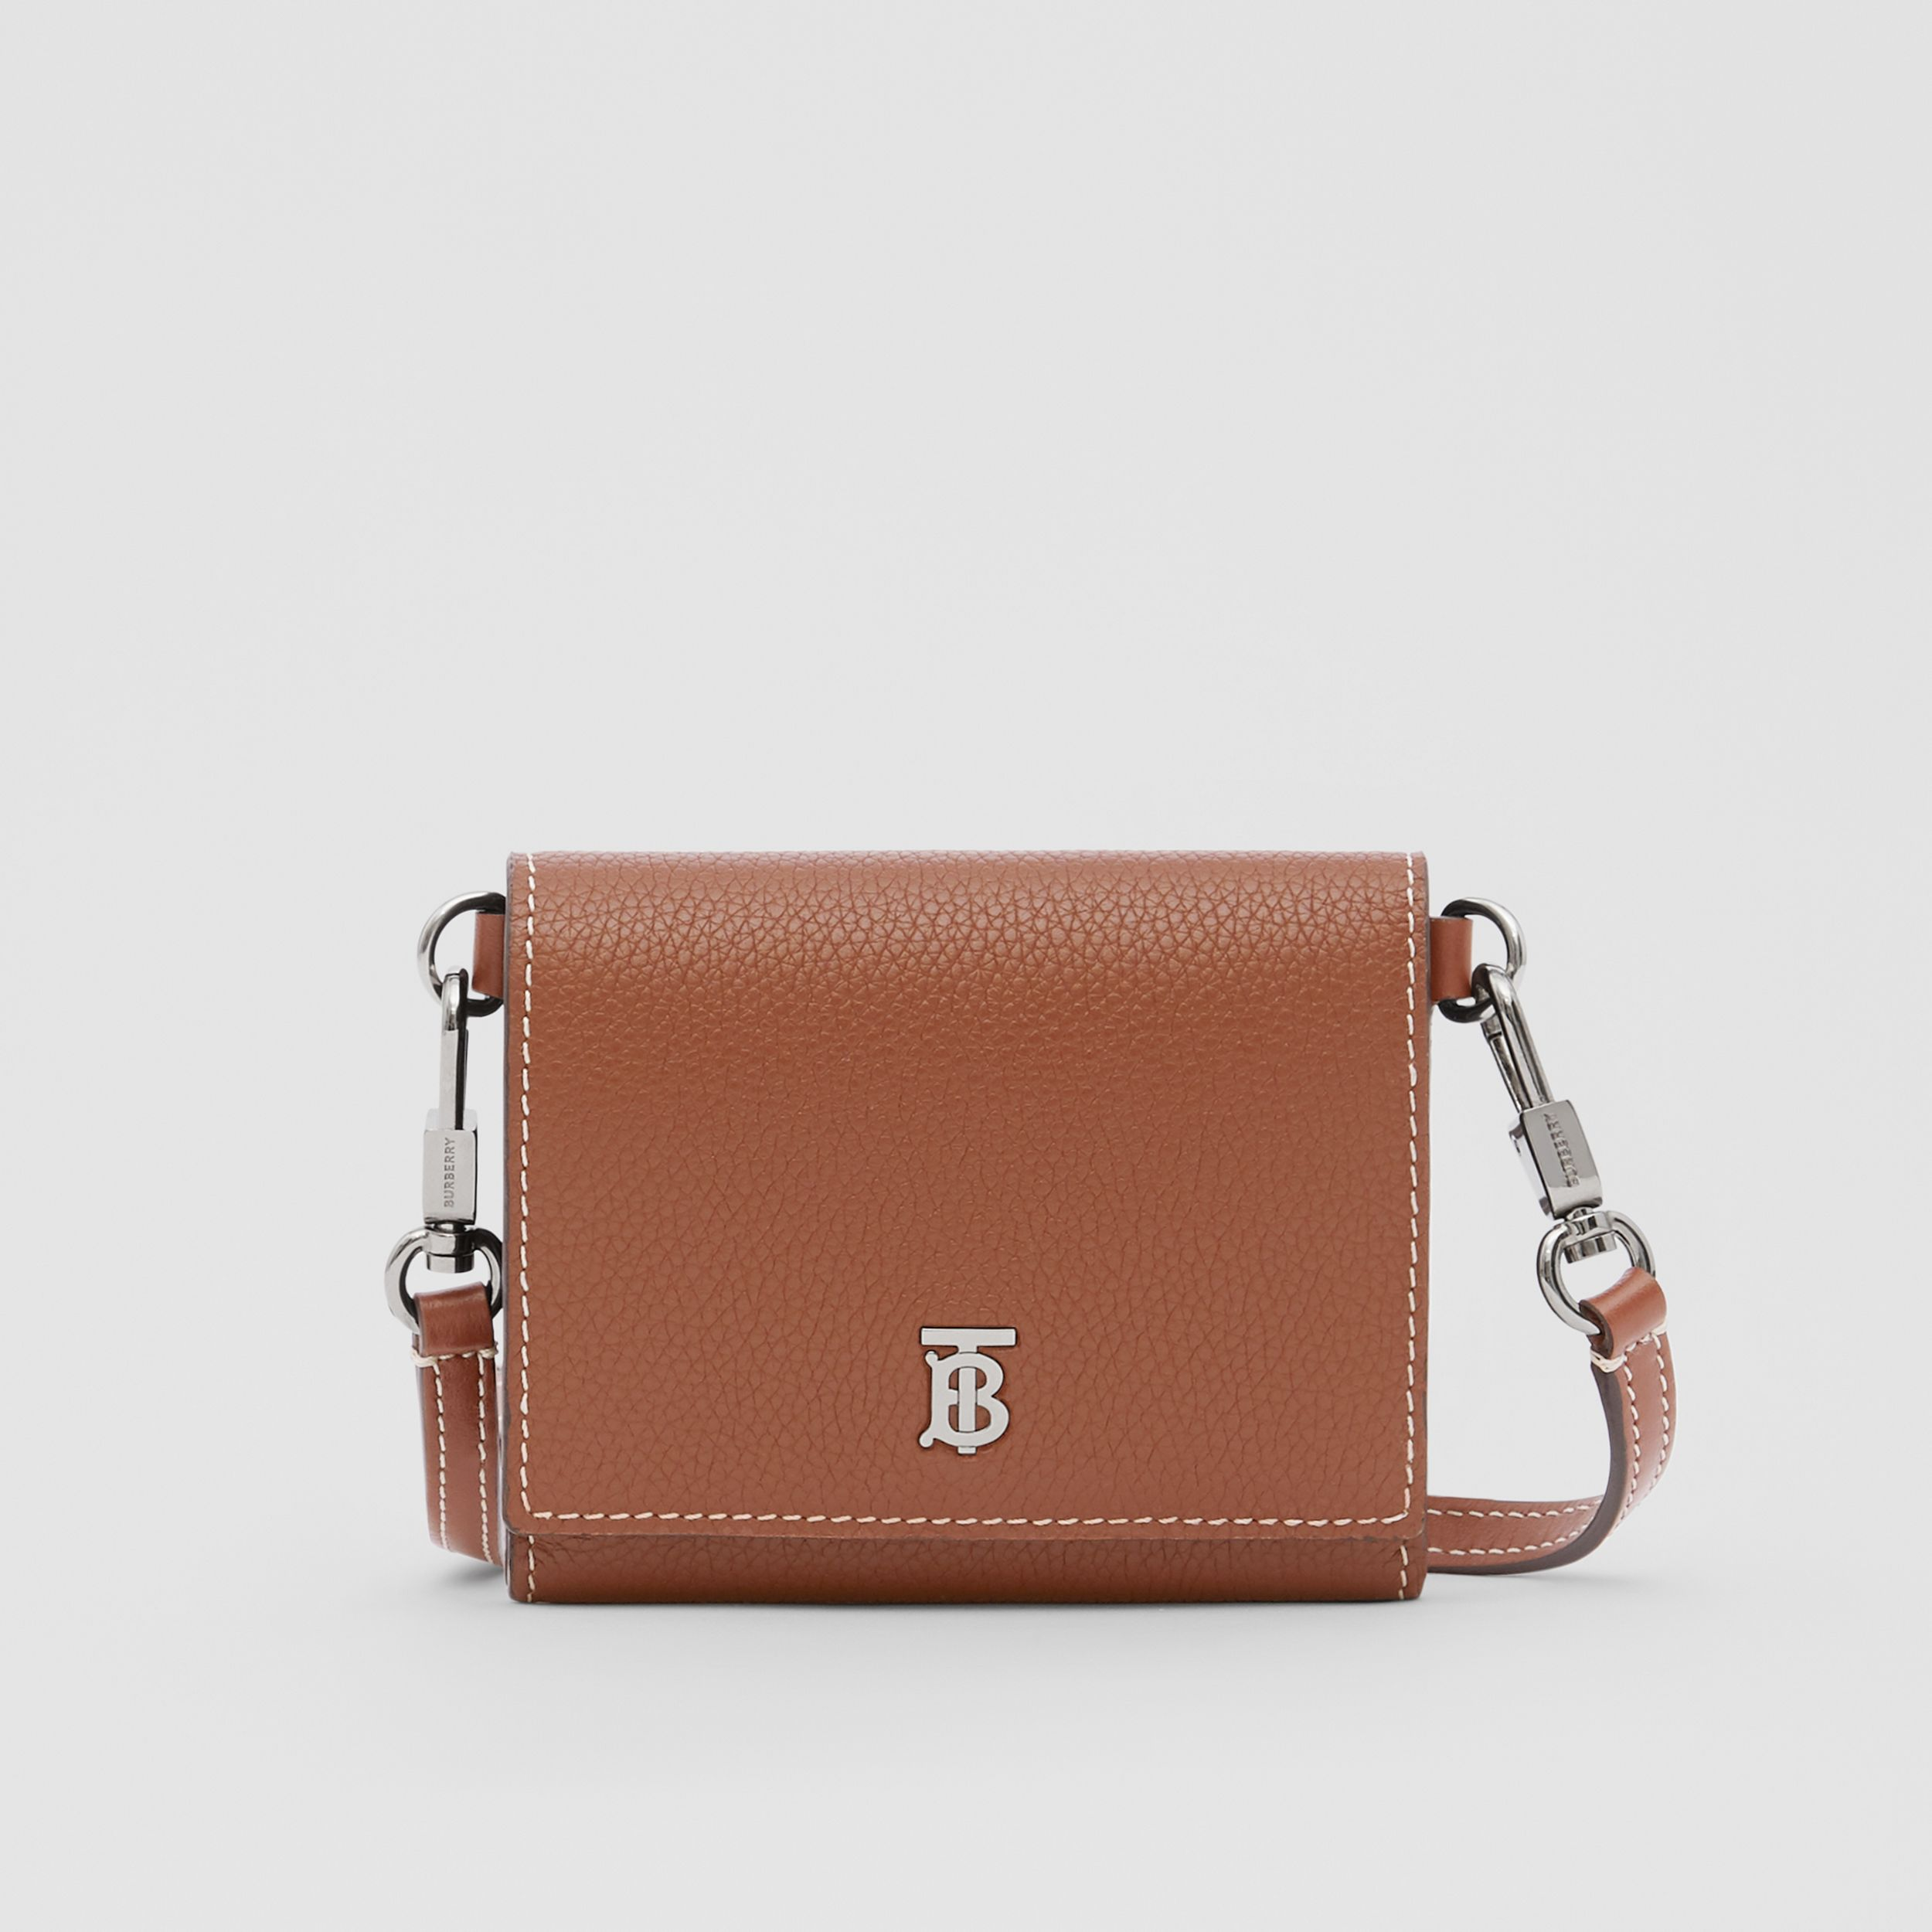 Small Grainy Leather Wallet with Detachable Strap in Tan | Burberry - 1